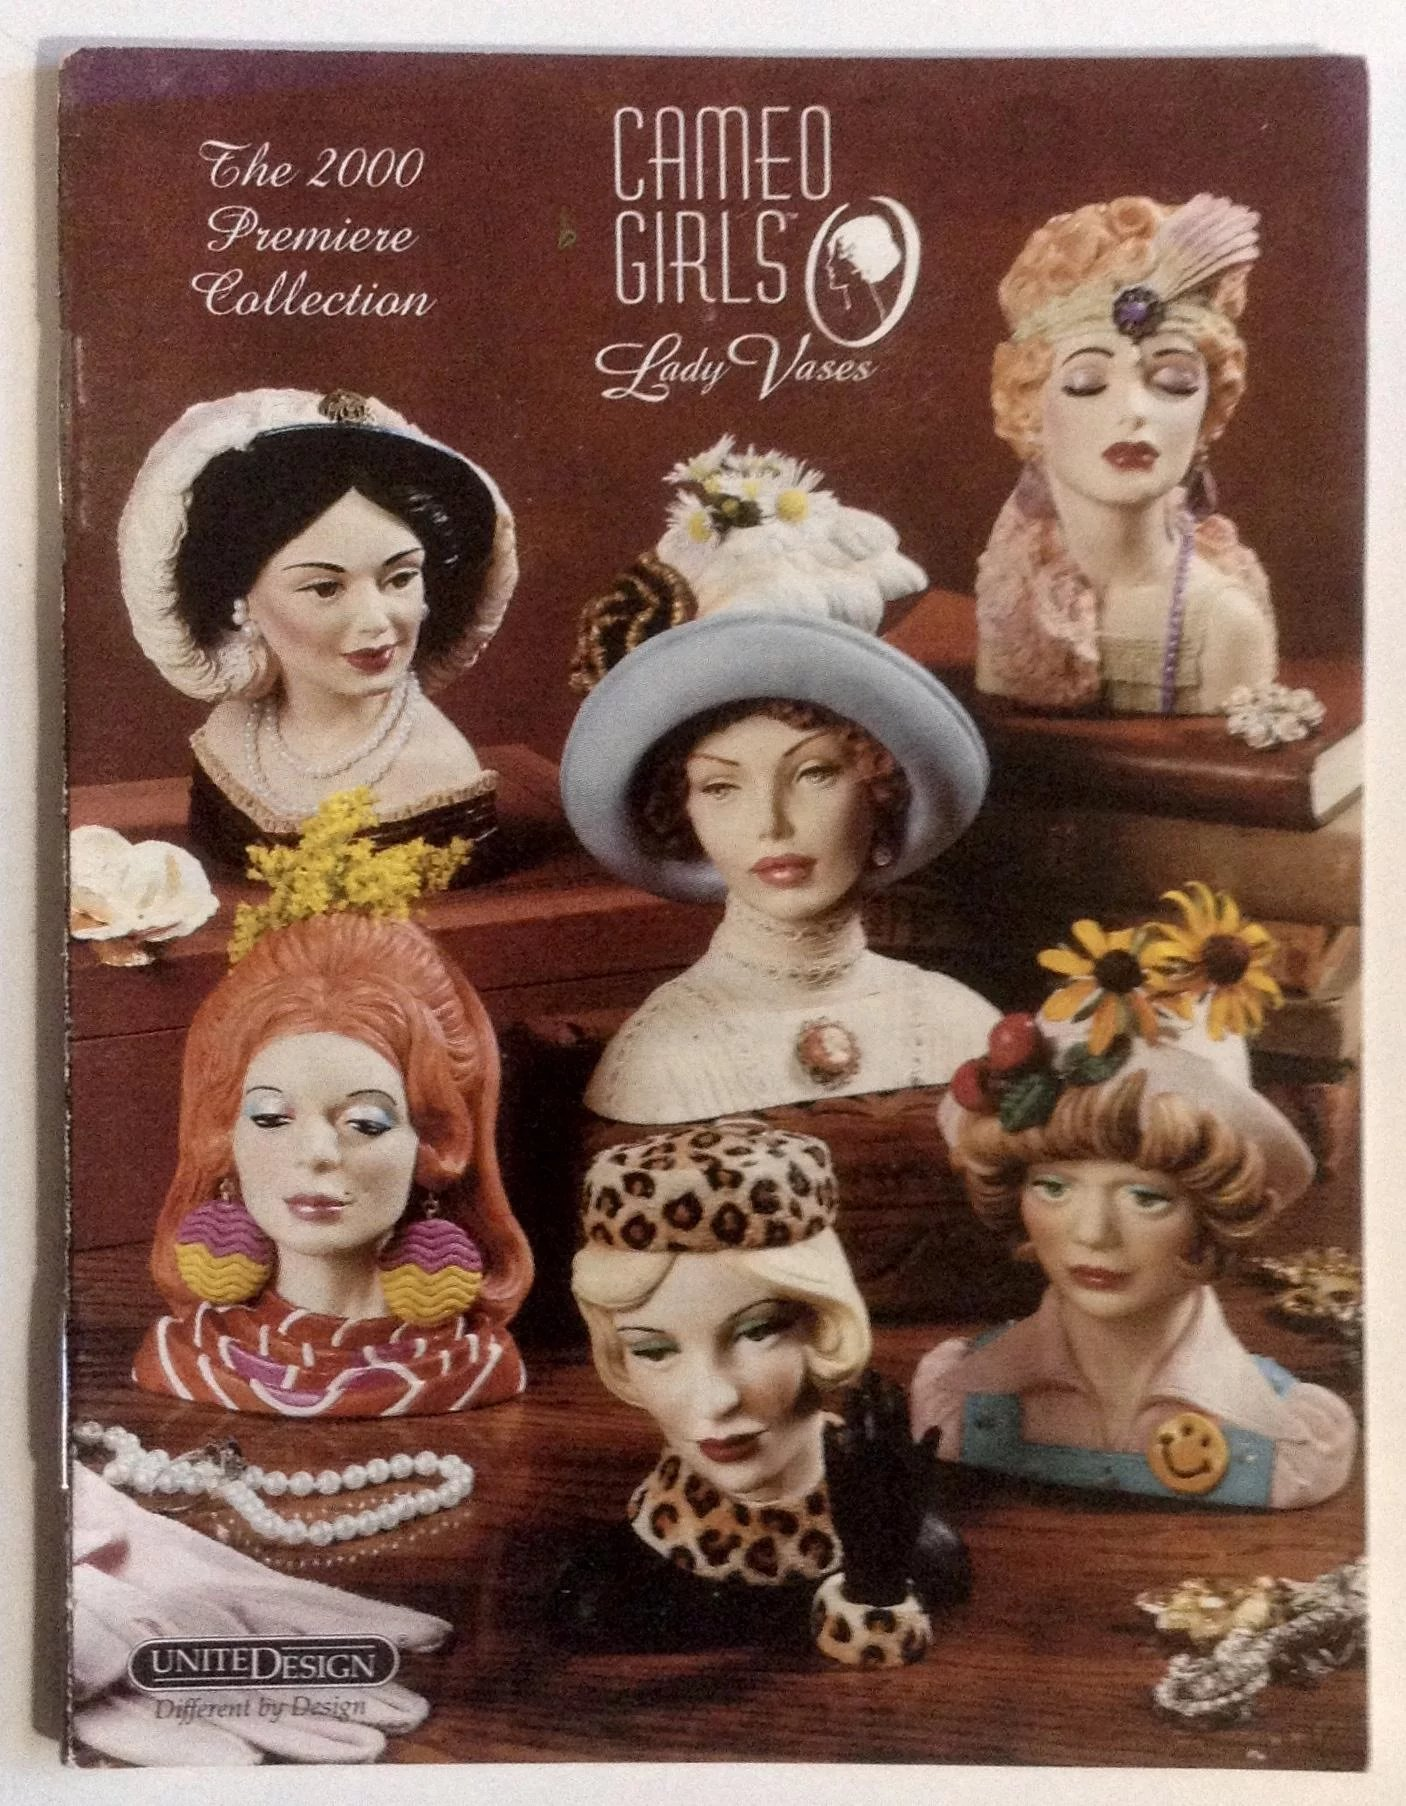 Cameo girls head vase eve 1973 folkfest finery lv 006 planter cameo girls head vase eve 1973 folkfest finery lv 006 planter click to expand reviewsmspy